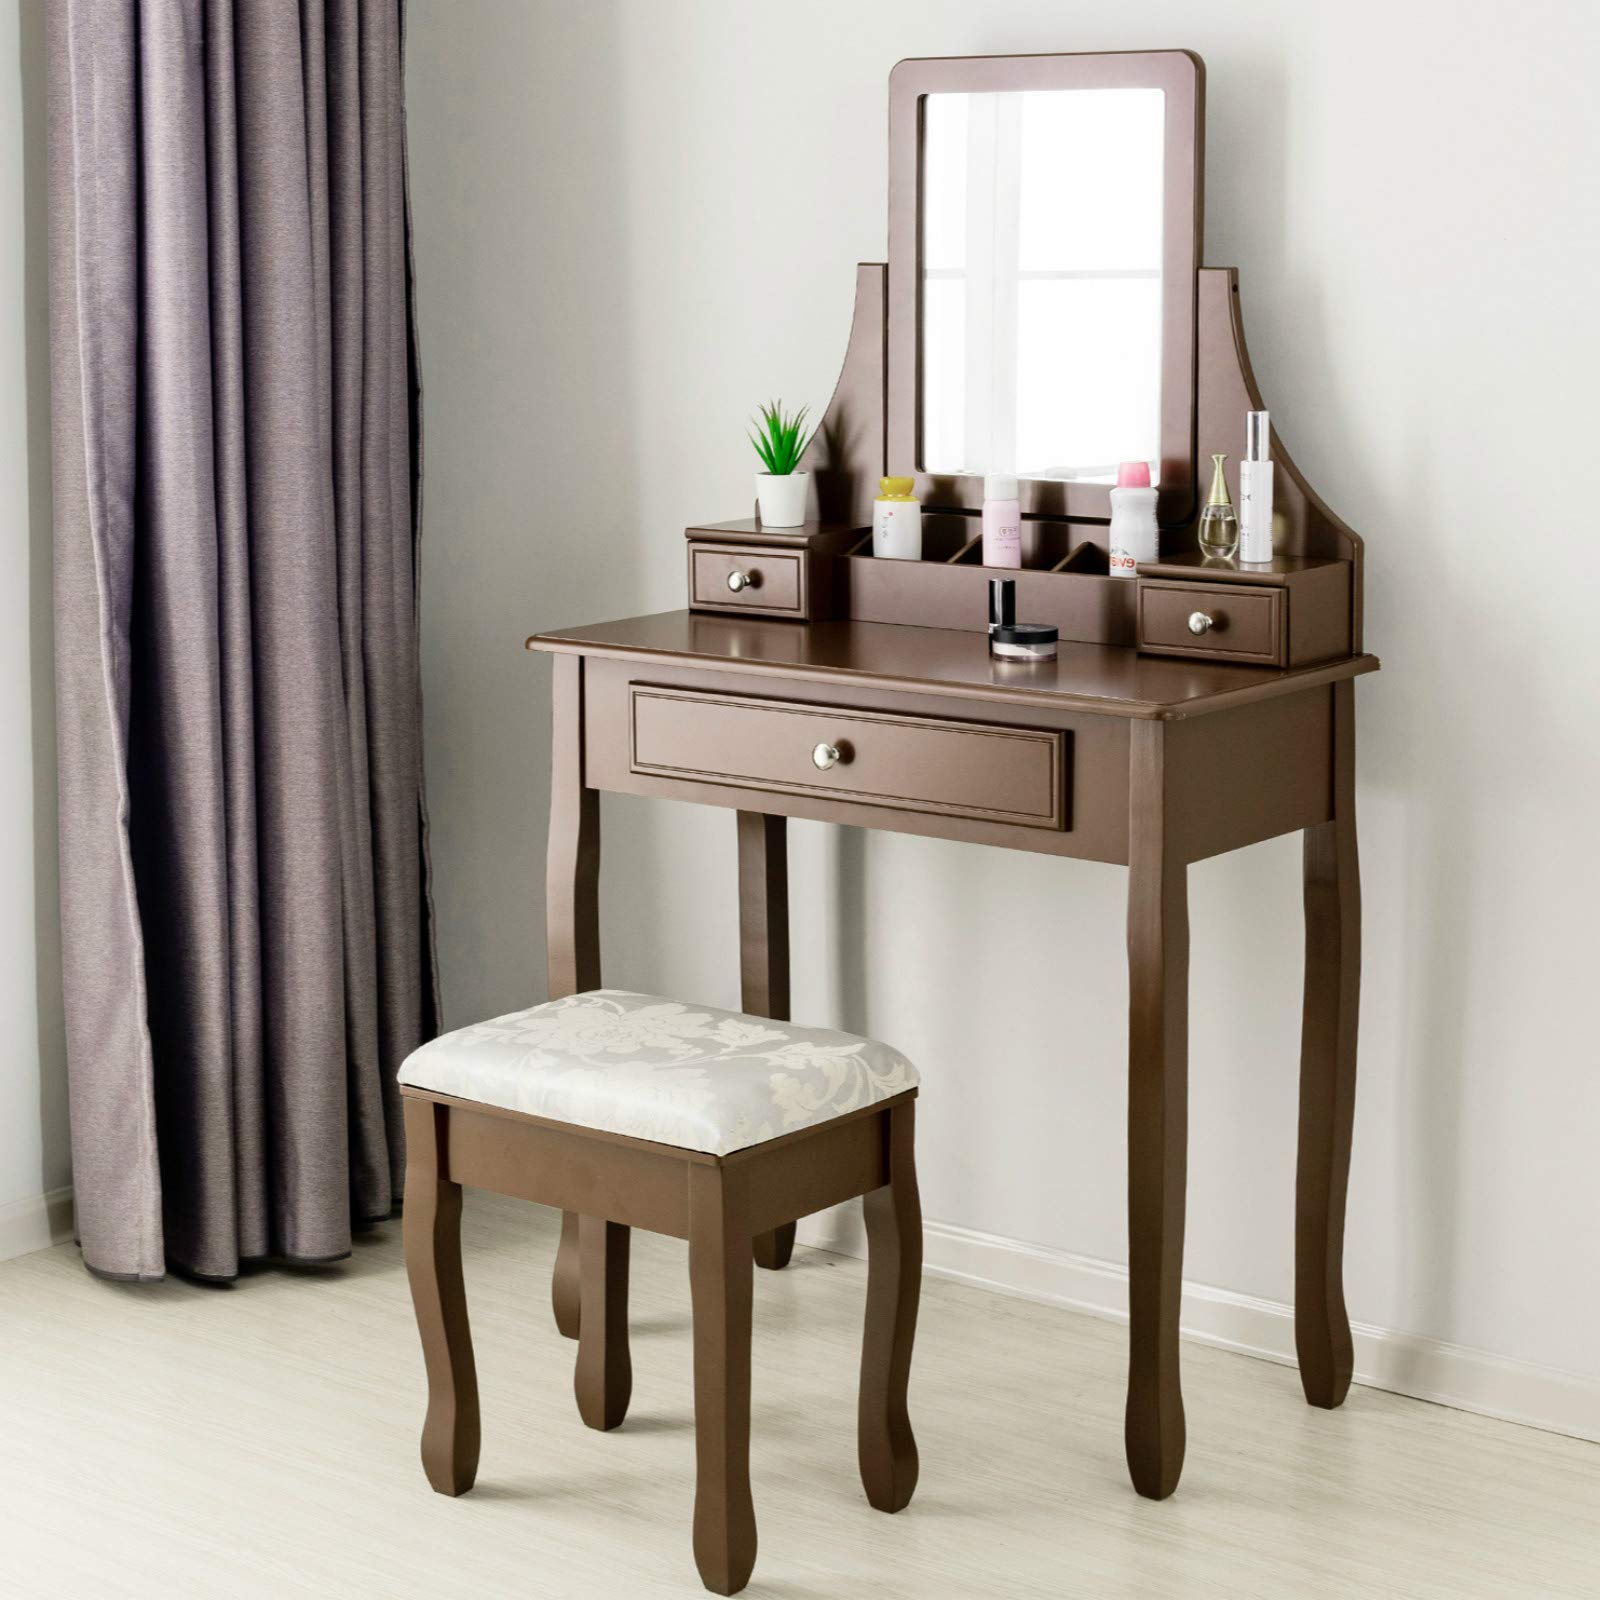 Mecor Vanity Table Set w/Square Mirror,Dressing Table Cushioned Stool&3 Drawers,3 Removable Dividers Bedroom Makeup Table Brown